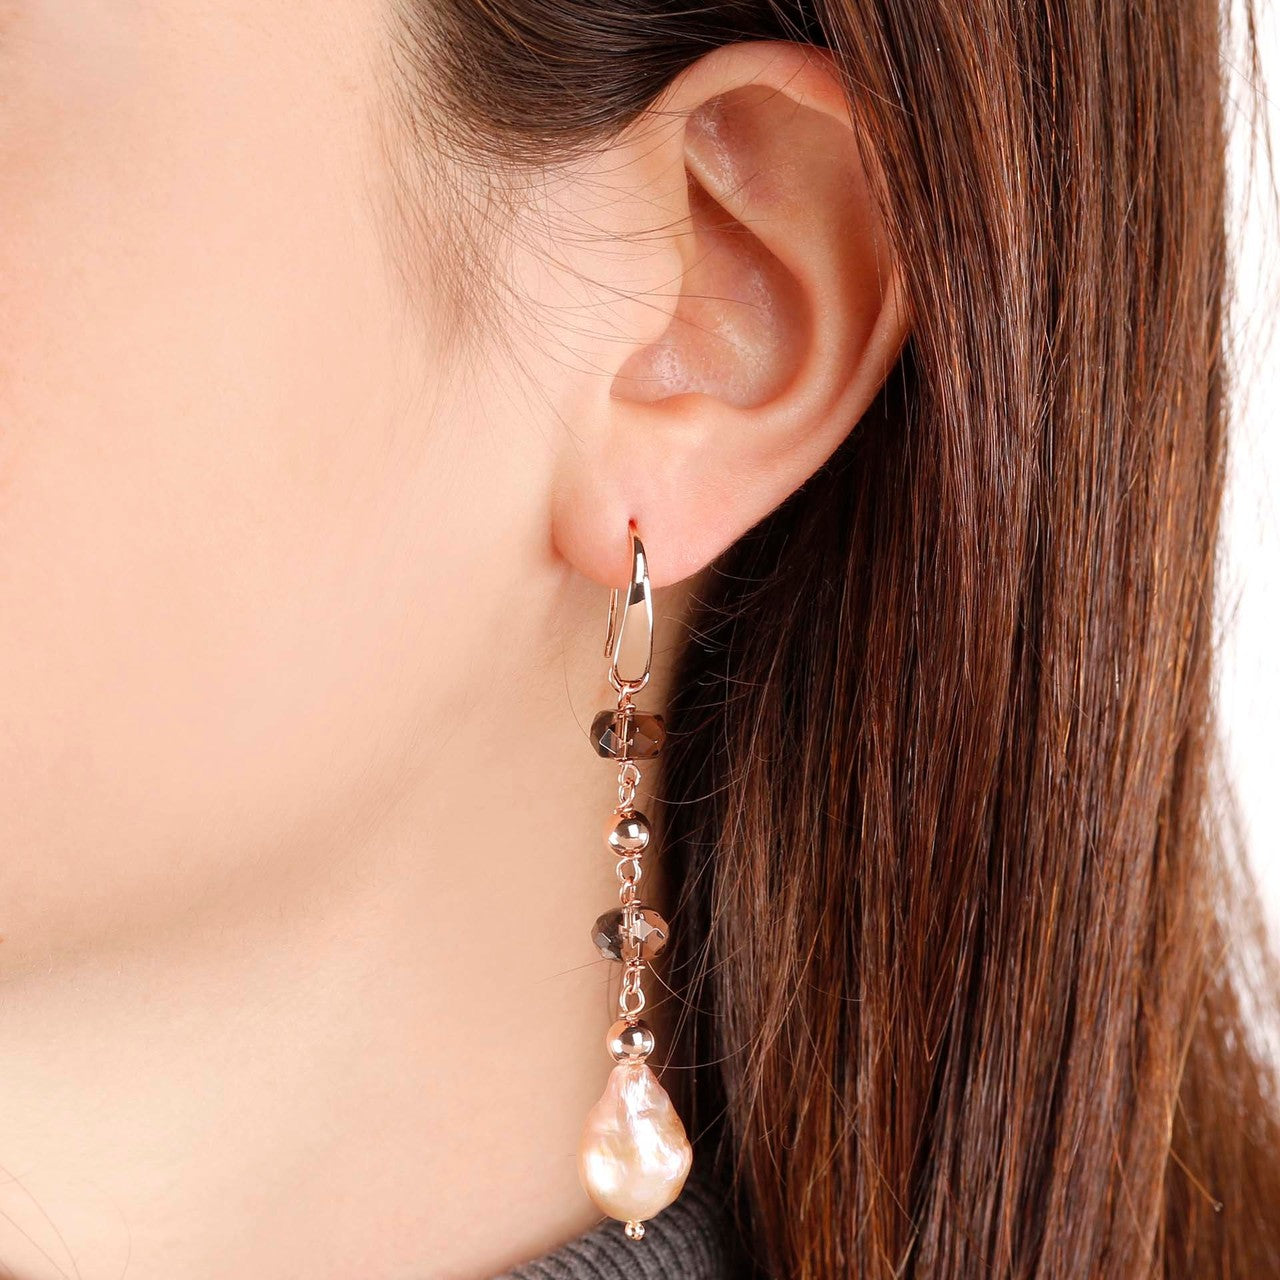 worn Dangle pearl earrings